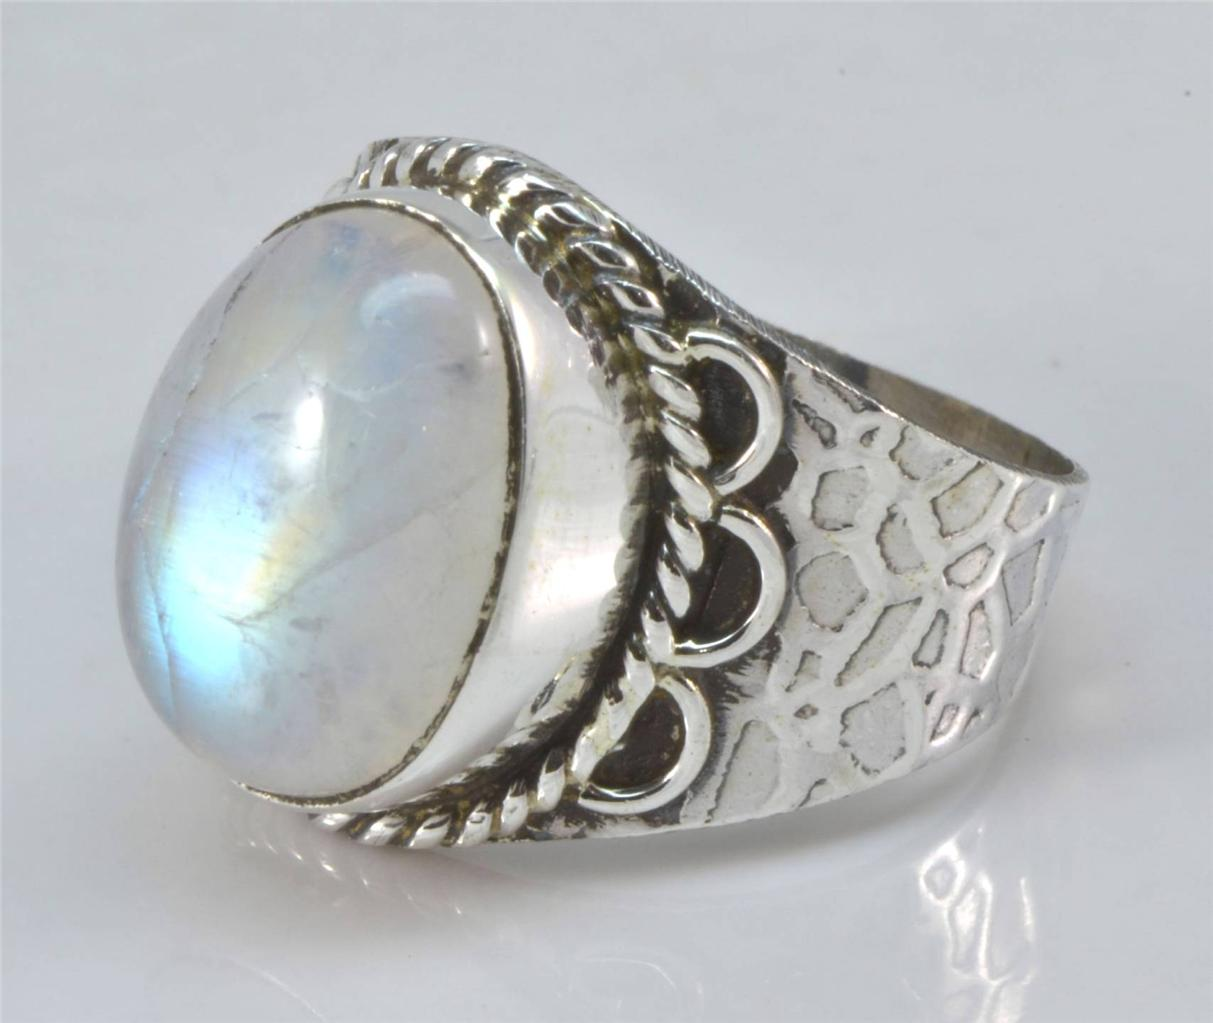 RAINBOW MOON STONE GEMSTONE RING 925 SOLID SILVER JEWELRY SIZE 7 IR